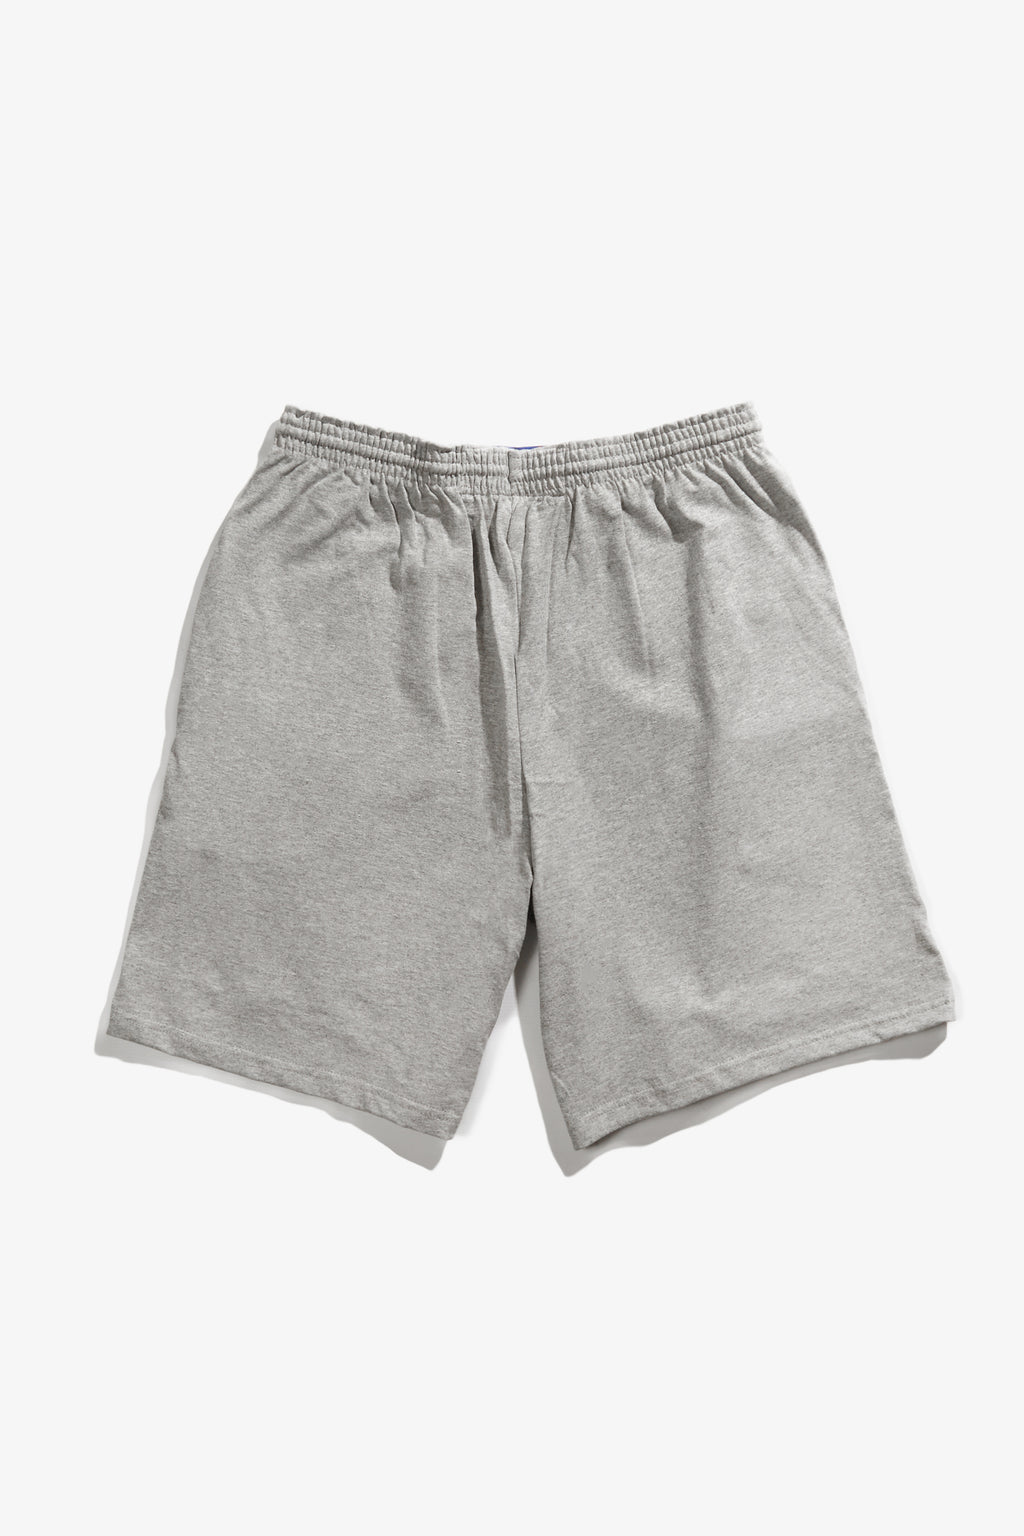 Champion - 8oz Cotton Gym Shorts - Grey